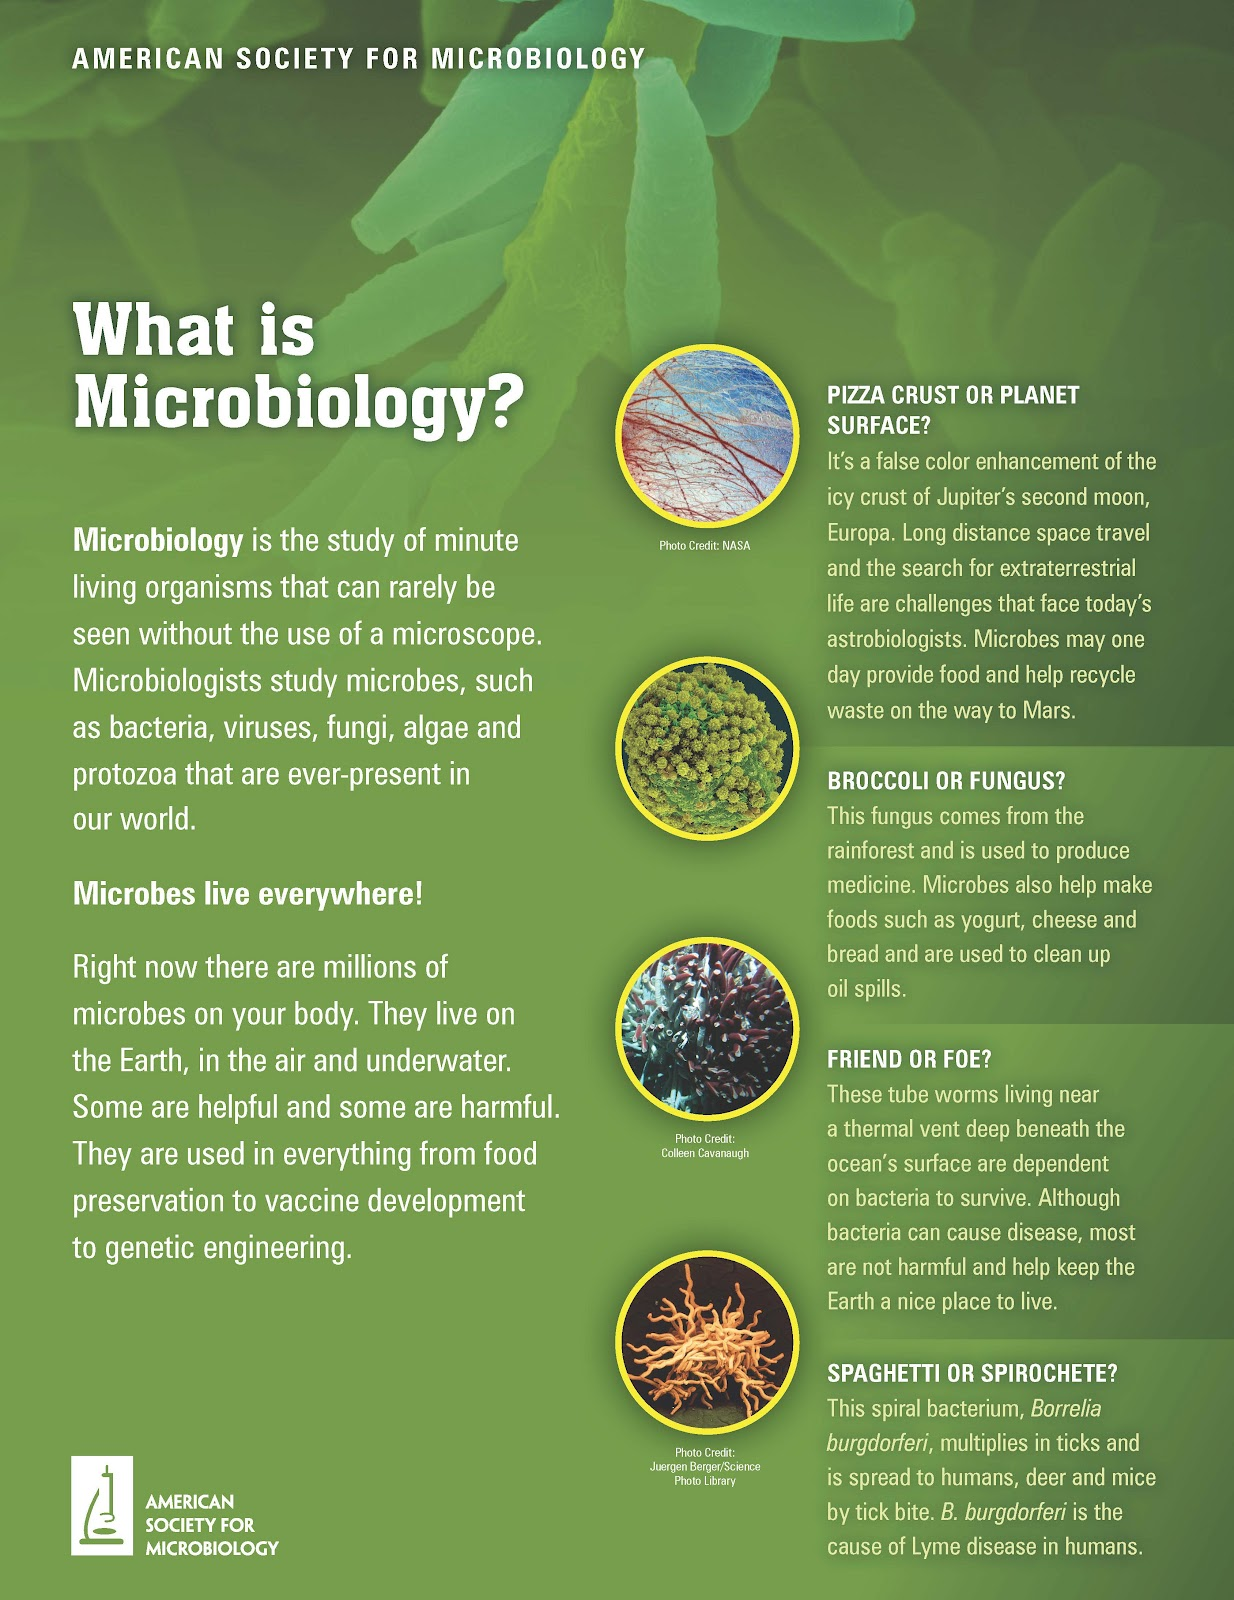 Microbiologists